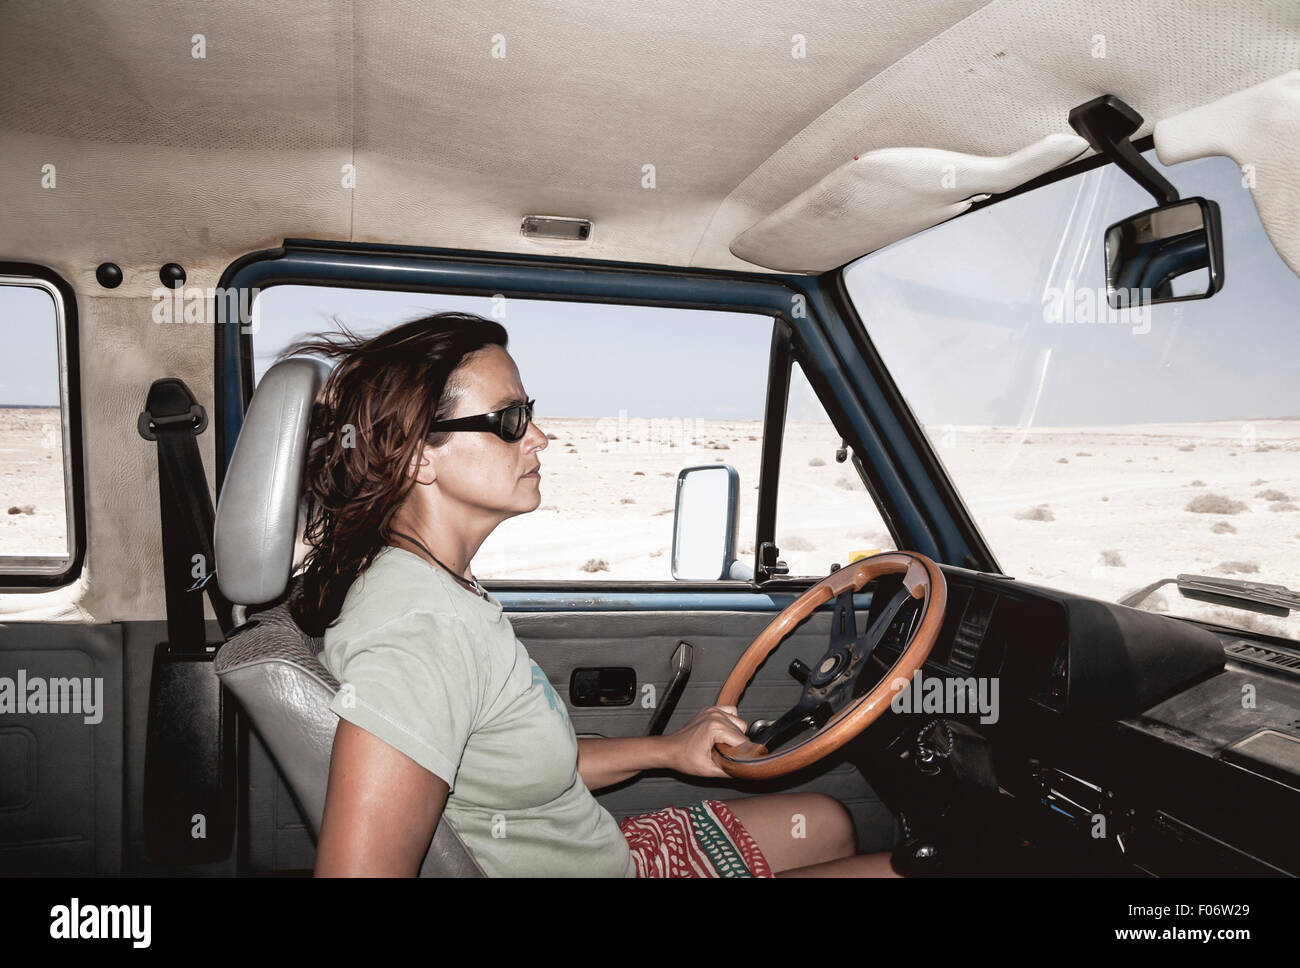 women driving Gun store owners indicate that women are a driving force behind surging gun sales during the past eighteen months.